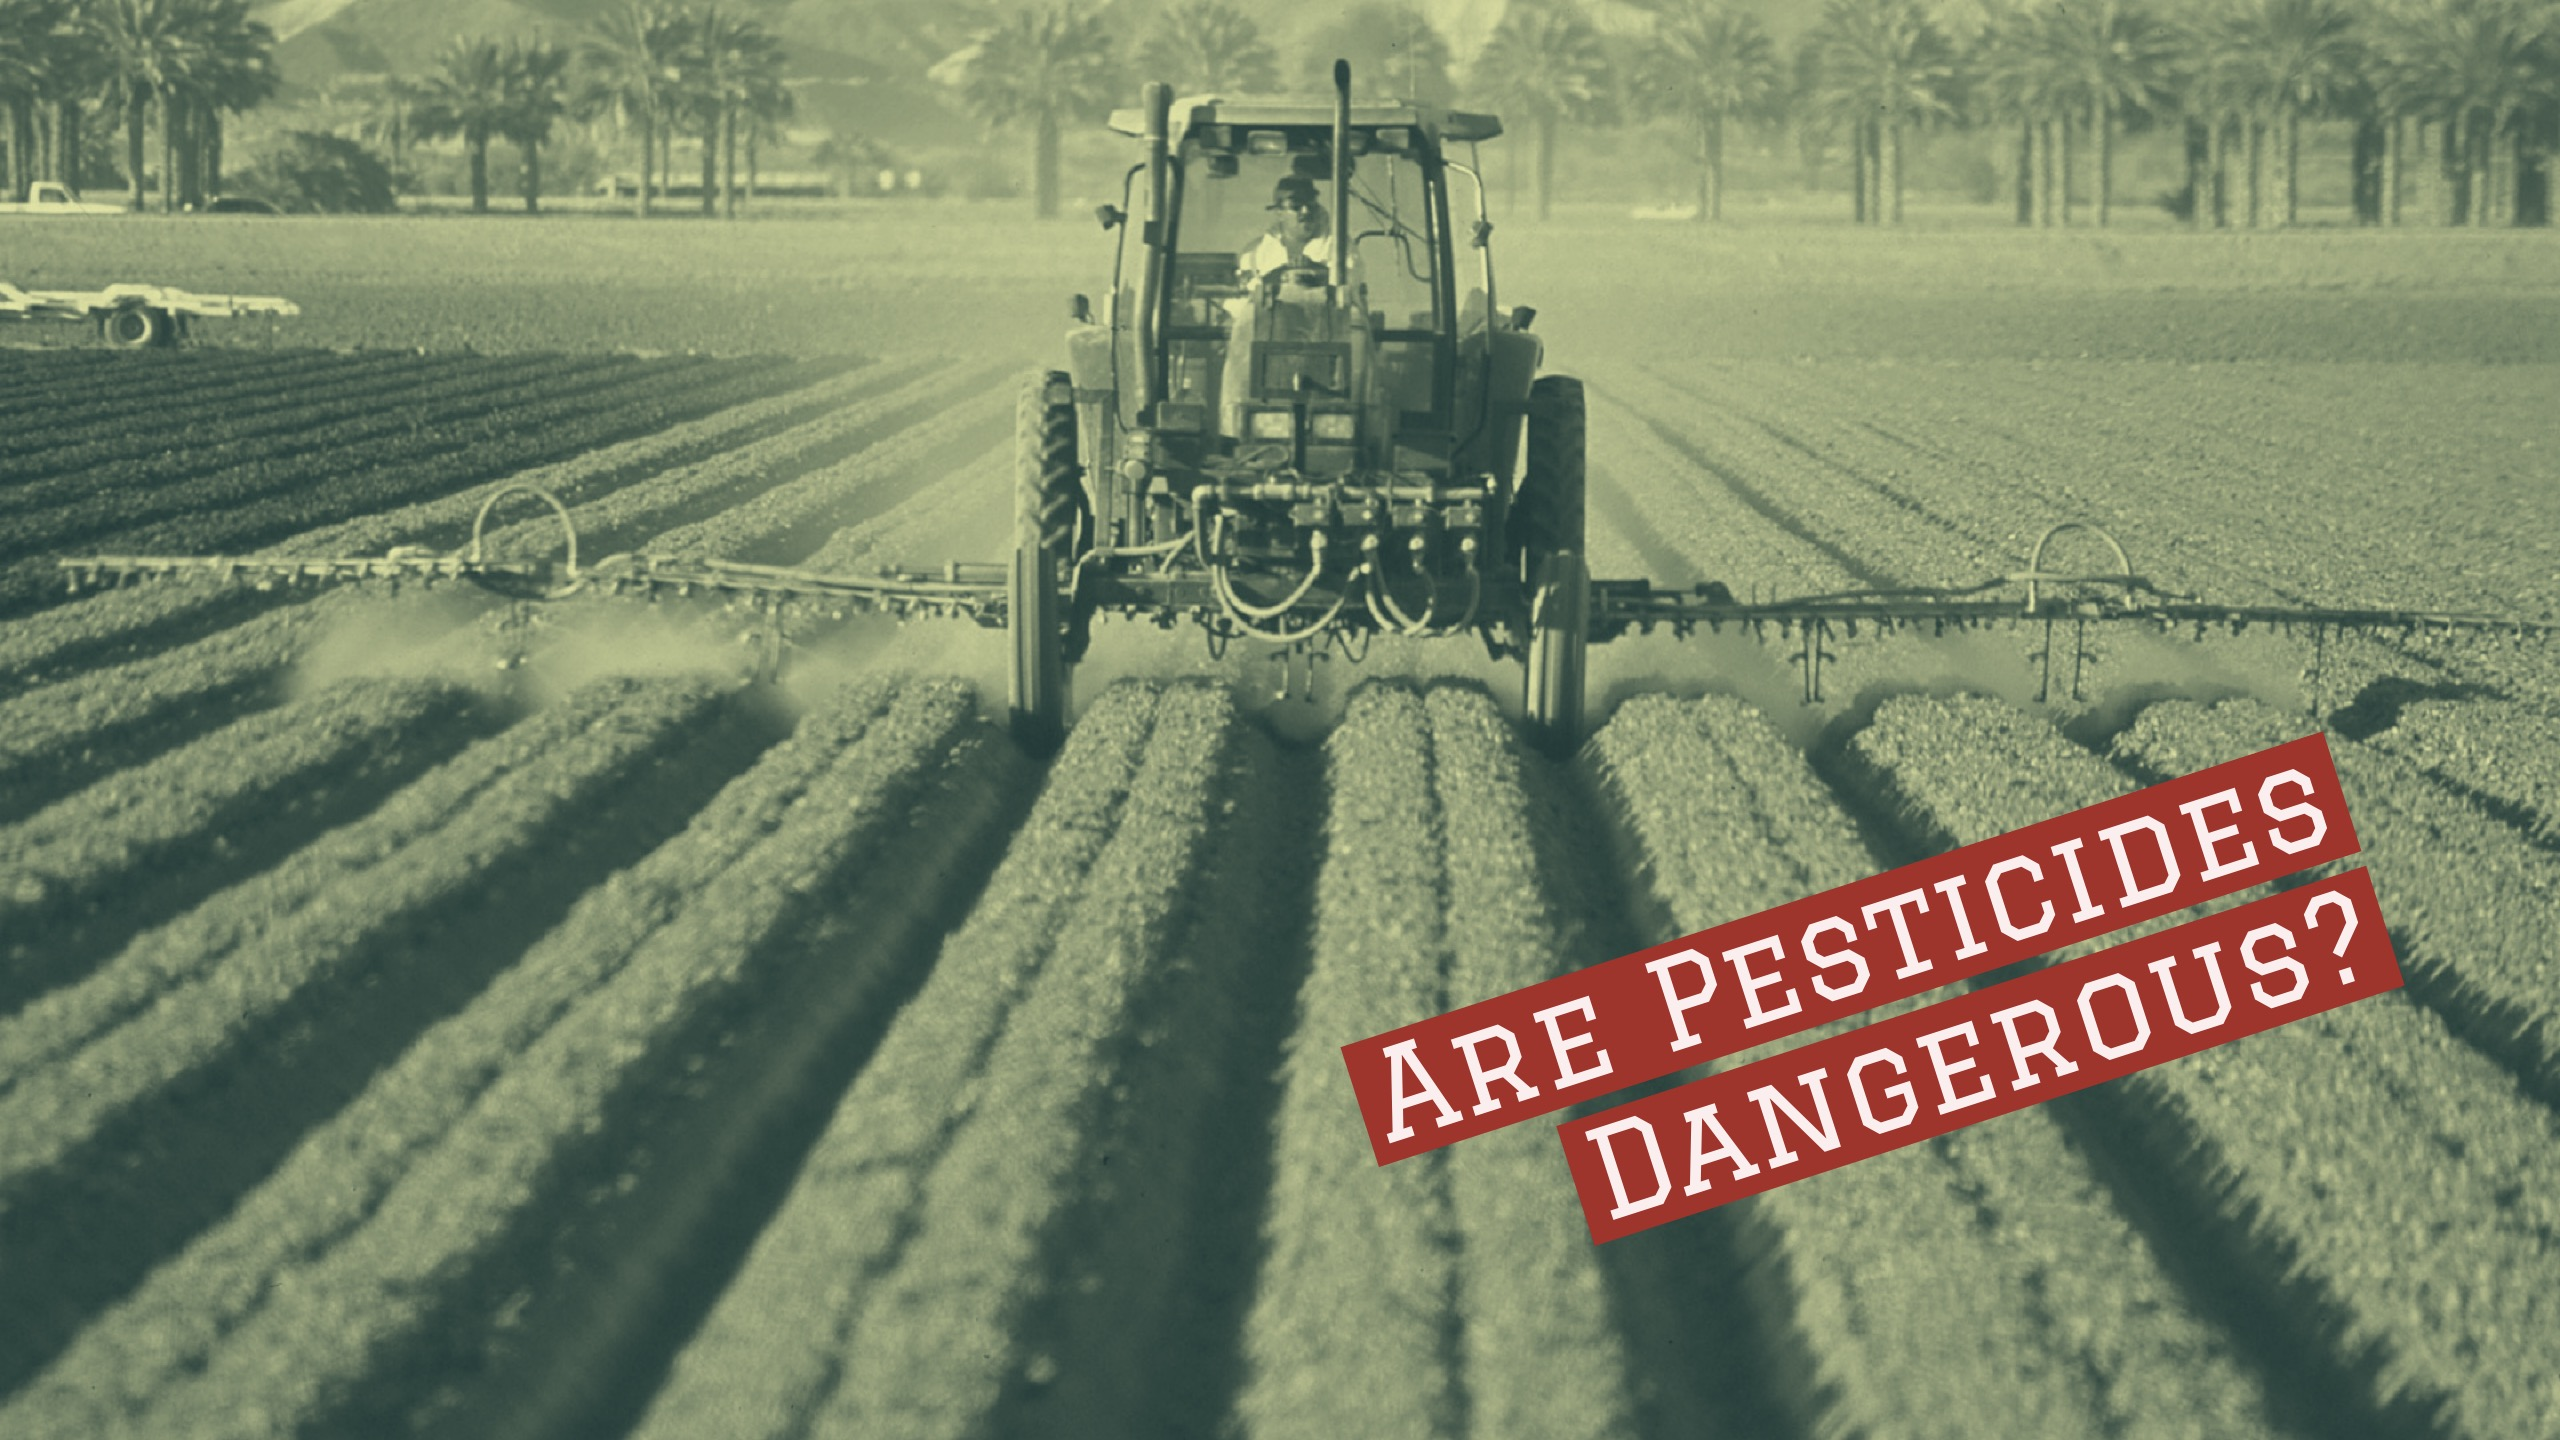 A tractor sprays many rows of crops with a pesticide - a text overlay says 'are pesticides dangerous?'